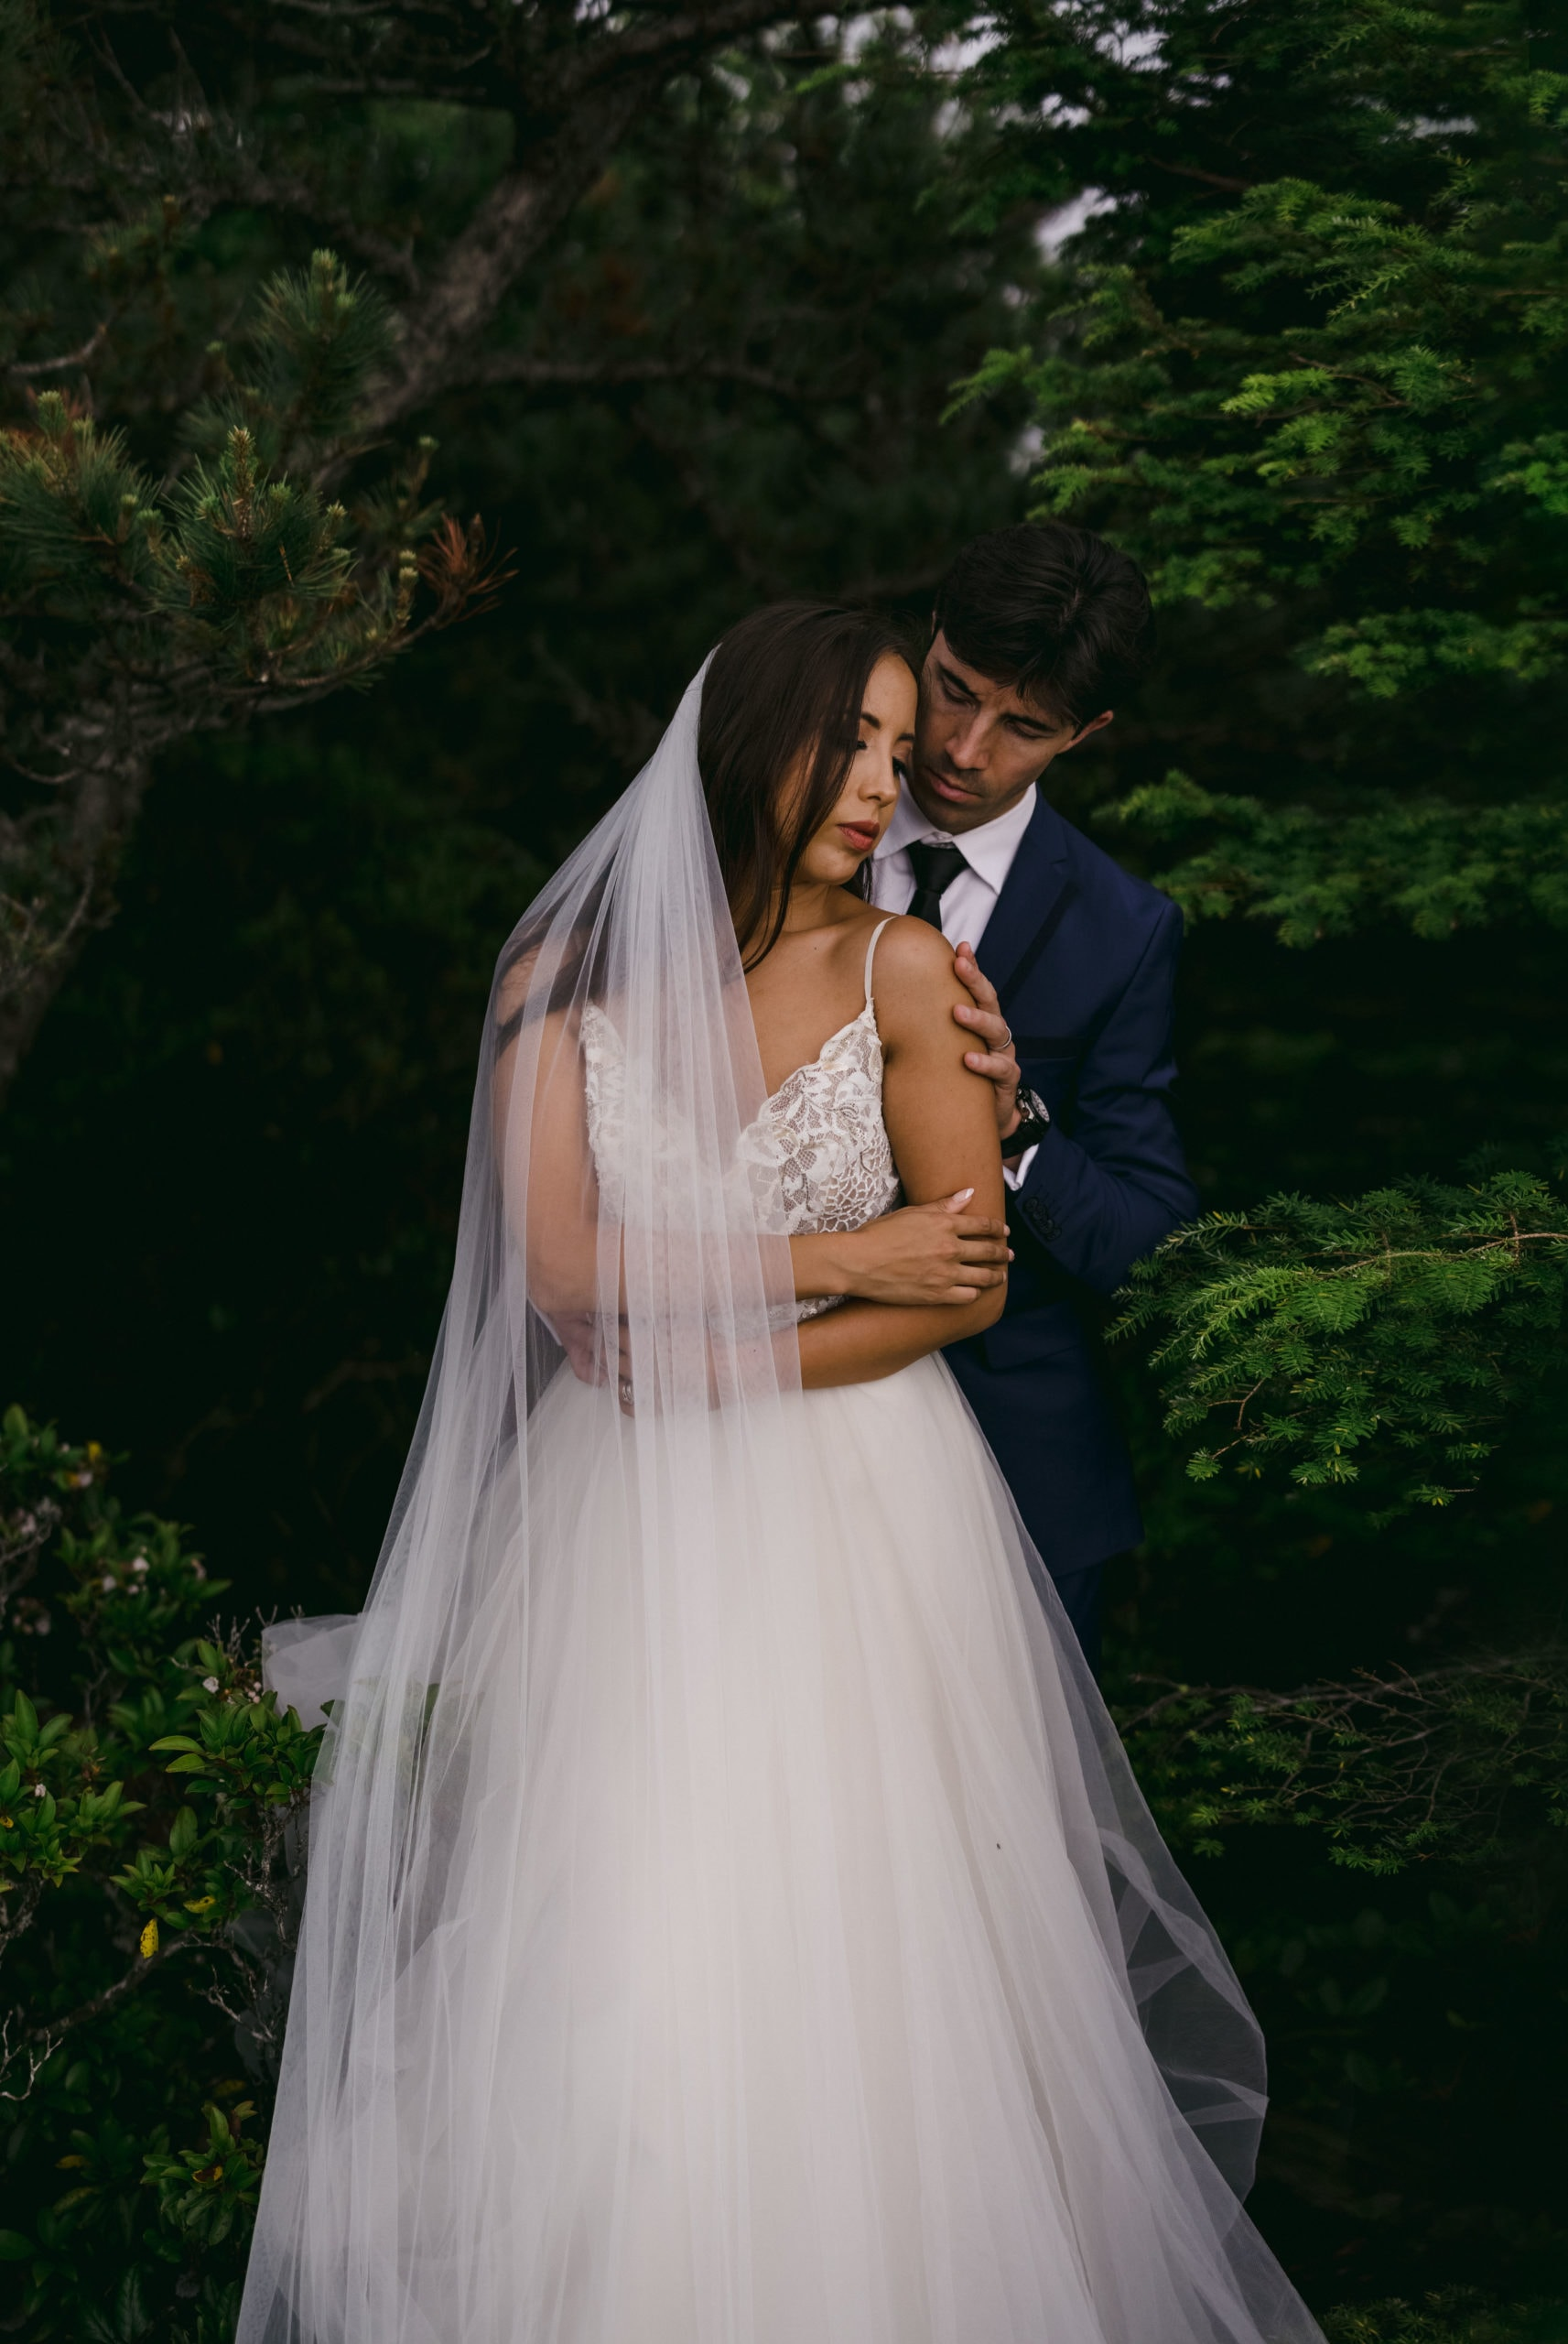 An Asheville elopement in the mountains created by a California elopement photographer.